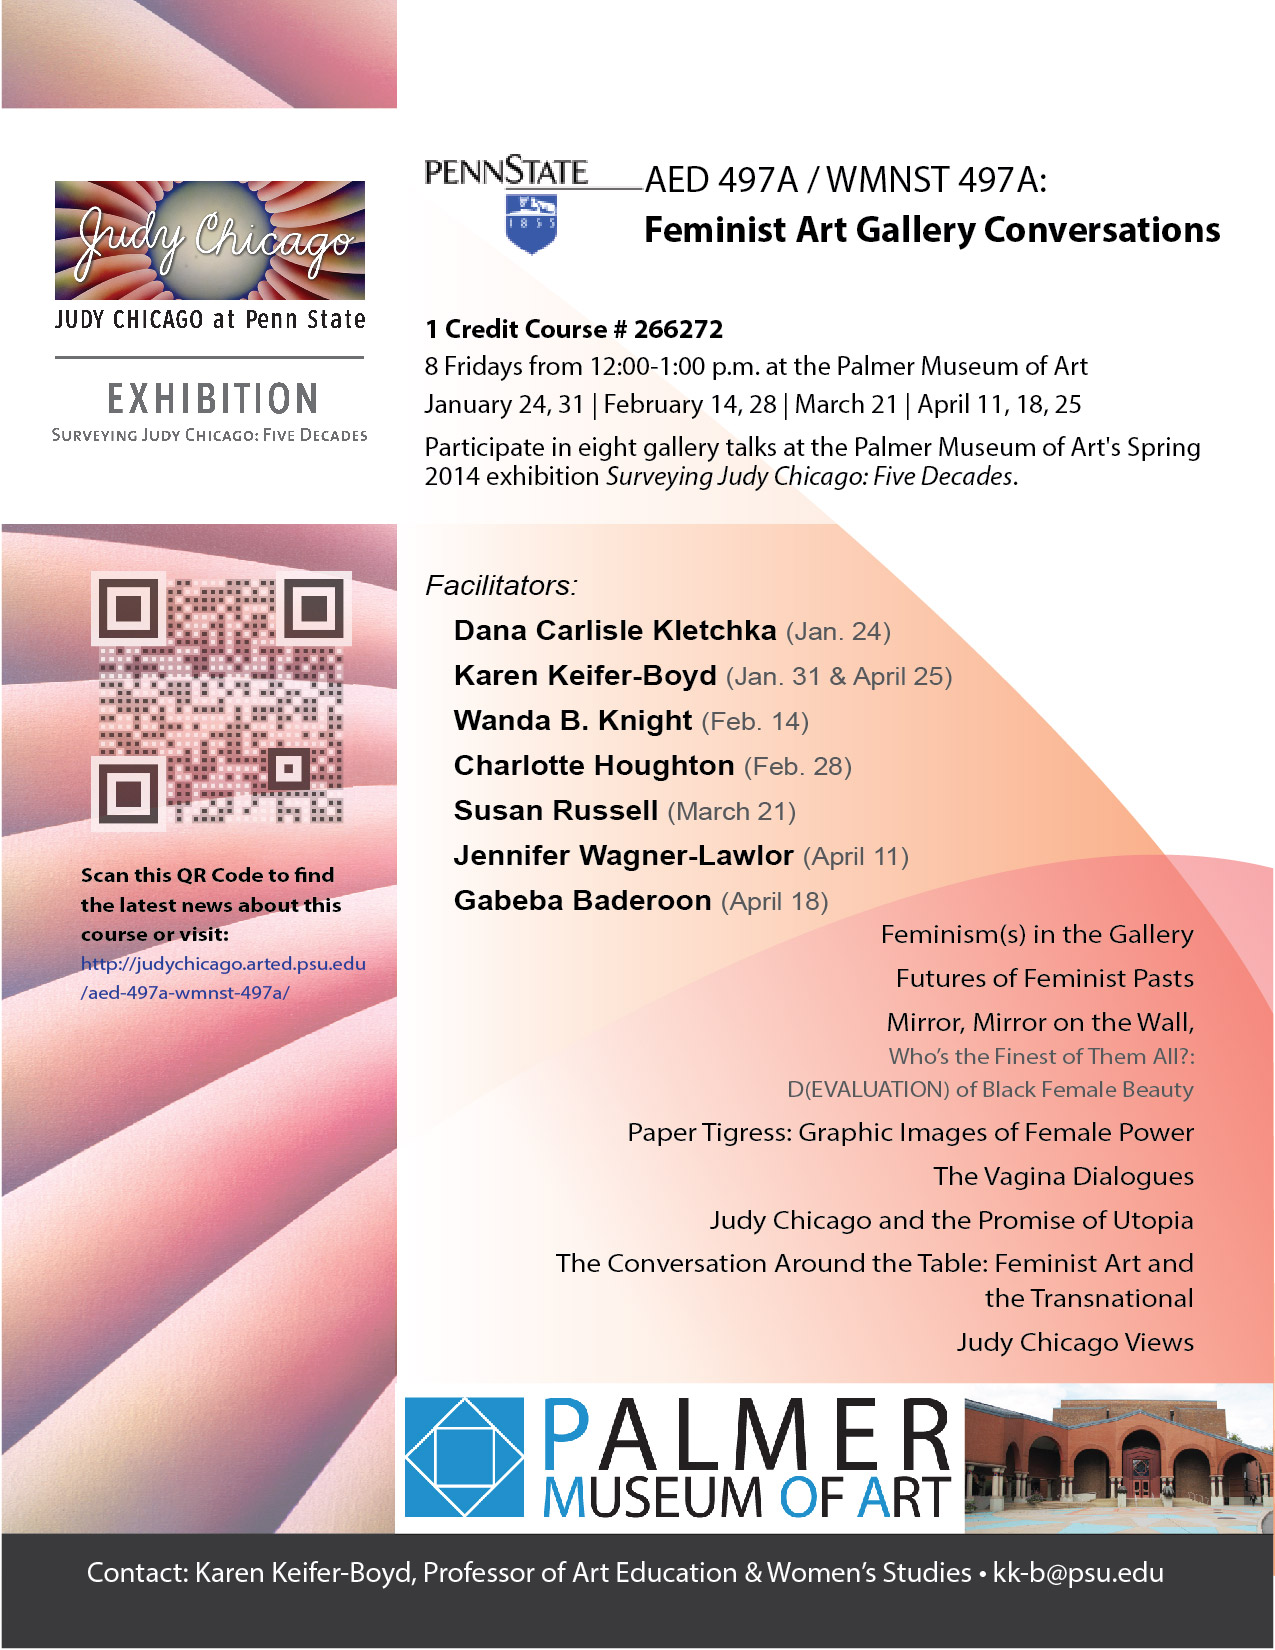 AED 497A/ WMNST 497A: Feminist Art Gallery Conversations Flyer